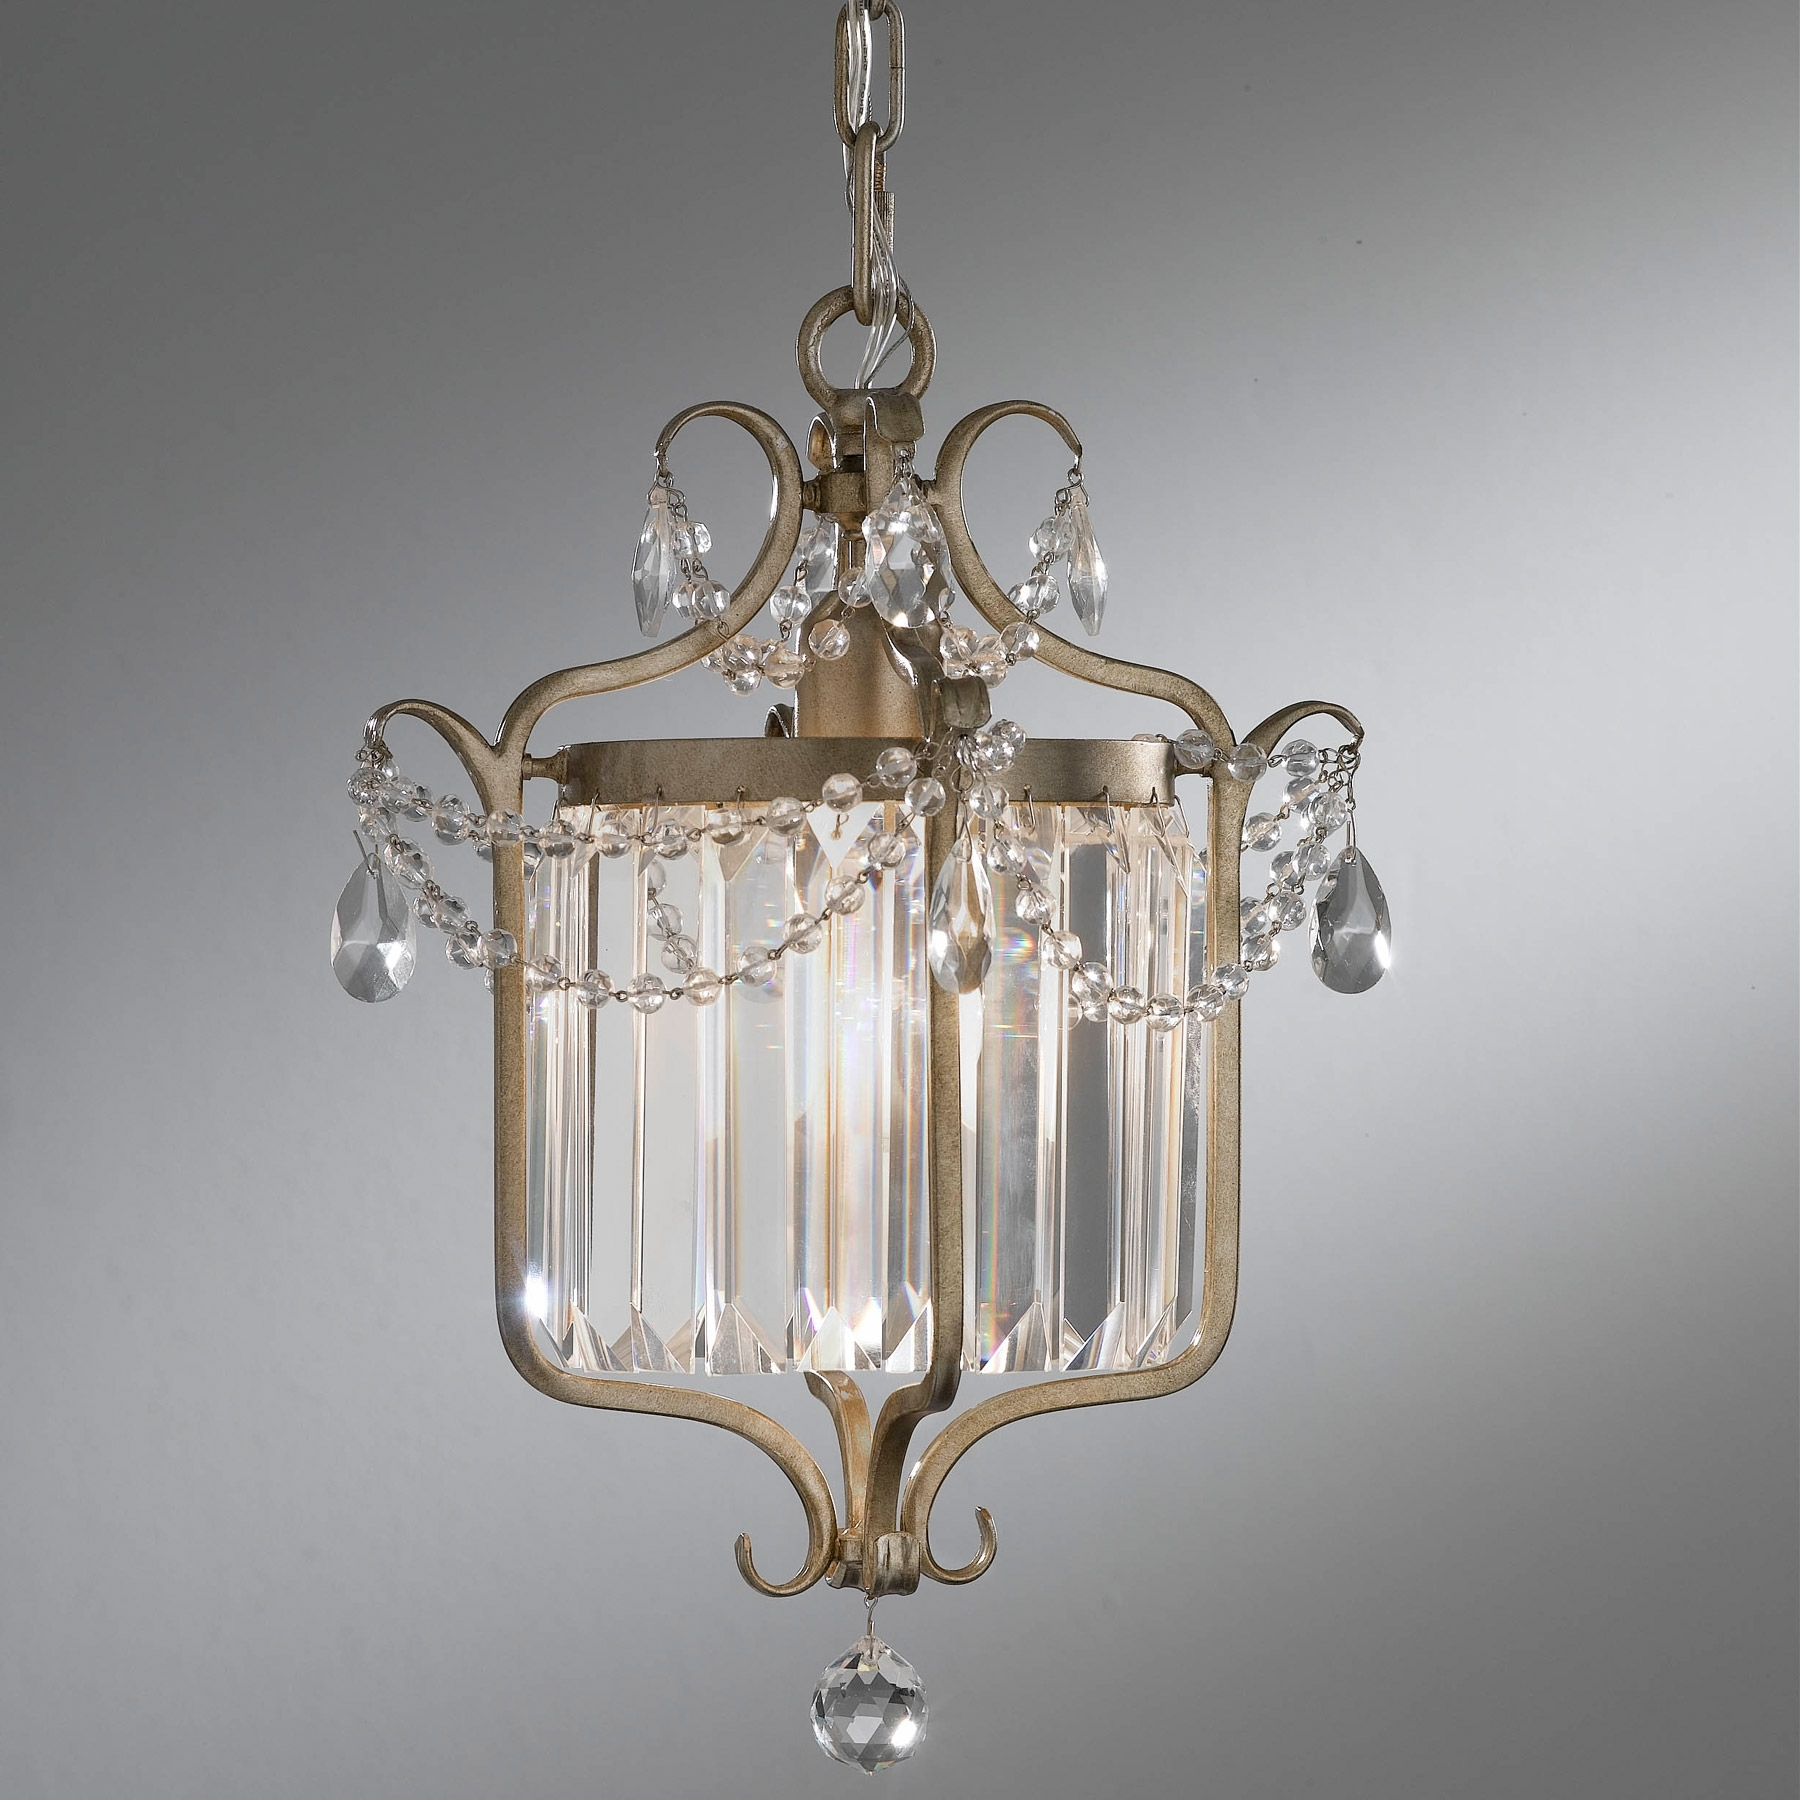 Well Liked F2473/1Gs Crystal Gianna Mini Chandelier With Regard To Gianna Mini Chandeliers (View 3 of 15)